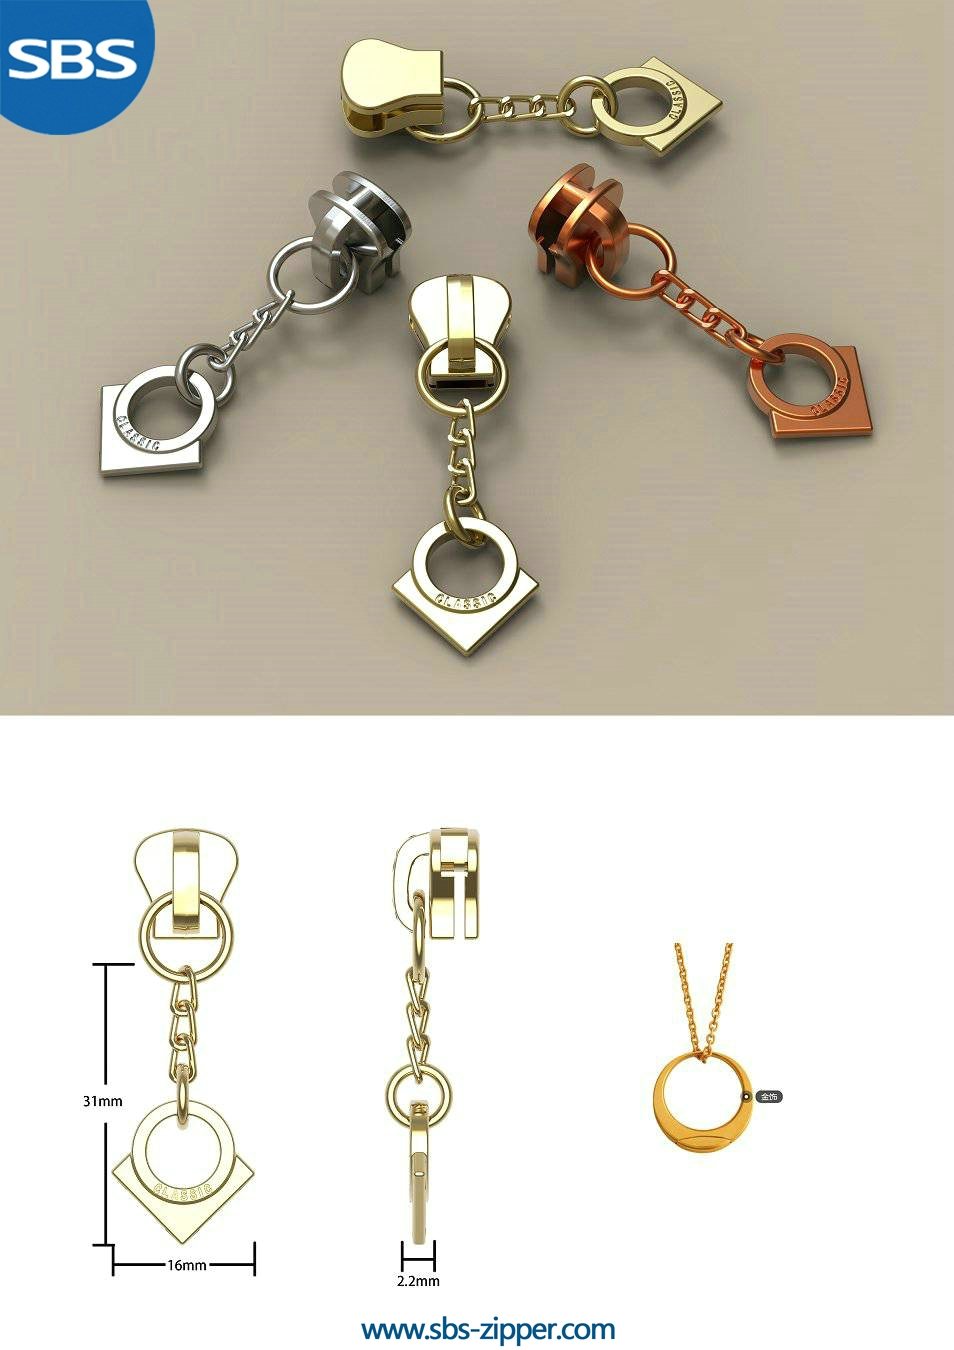 Metal Zipper Pulls Wholesale 16AC004 | SBS Zipper